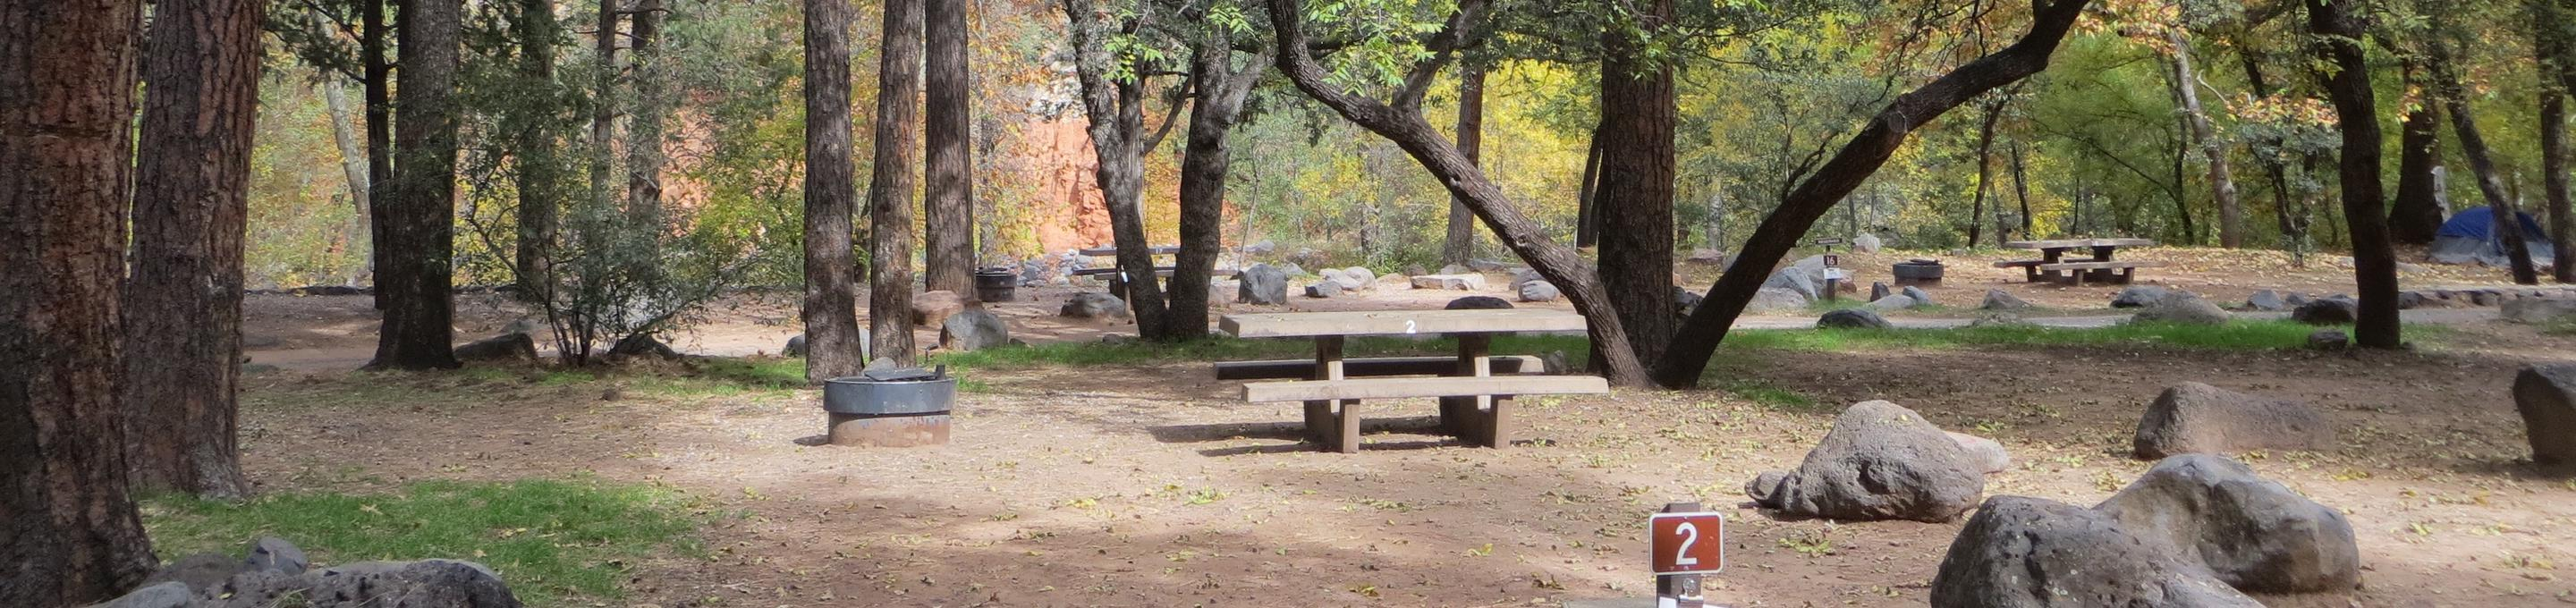 Manzanita Campground site #02 featuring the treed picnic area, camping space, and fire pit.